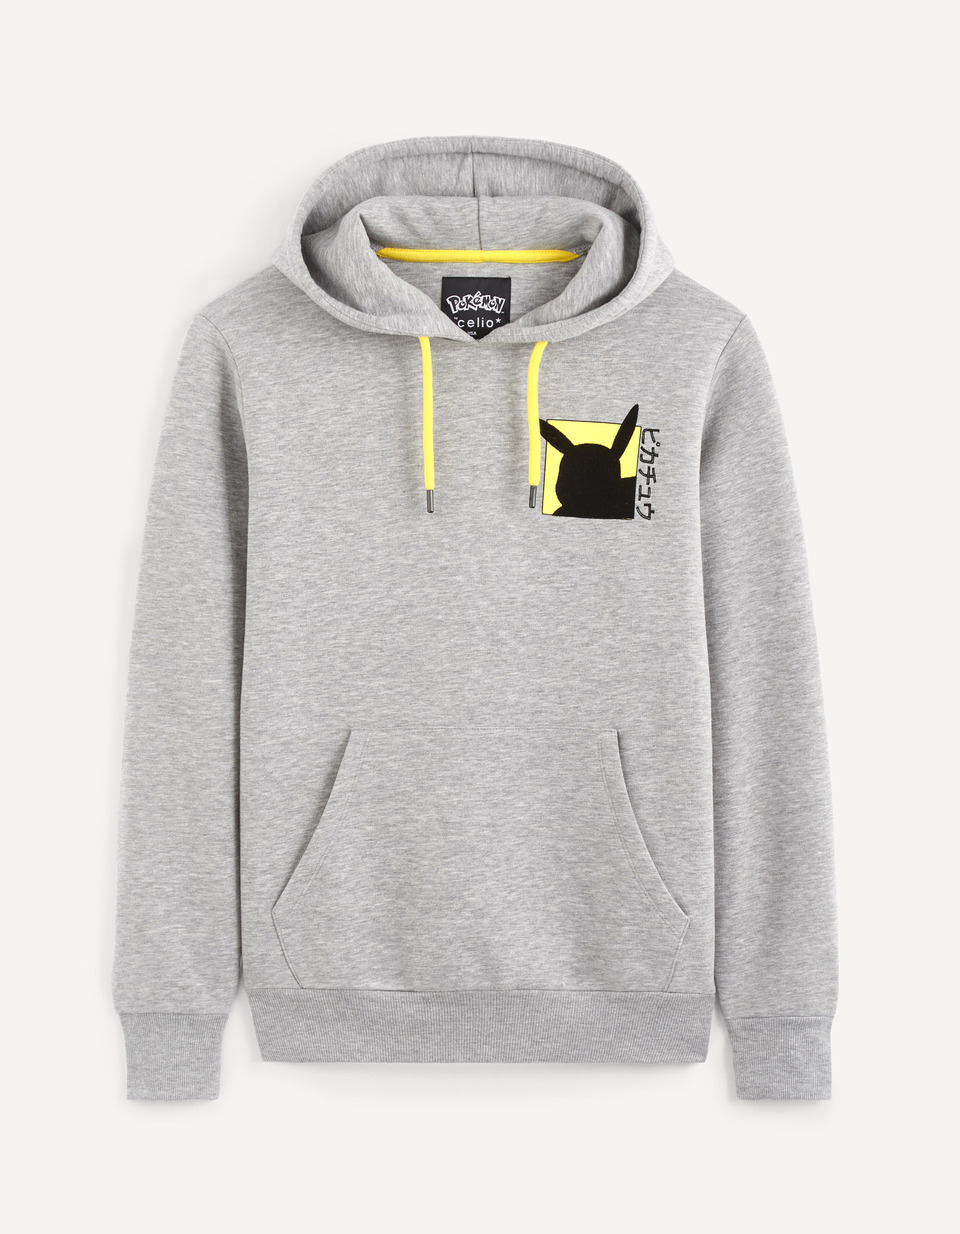 Sweat celio x Pokemon face